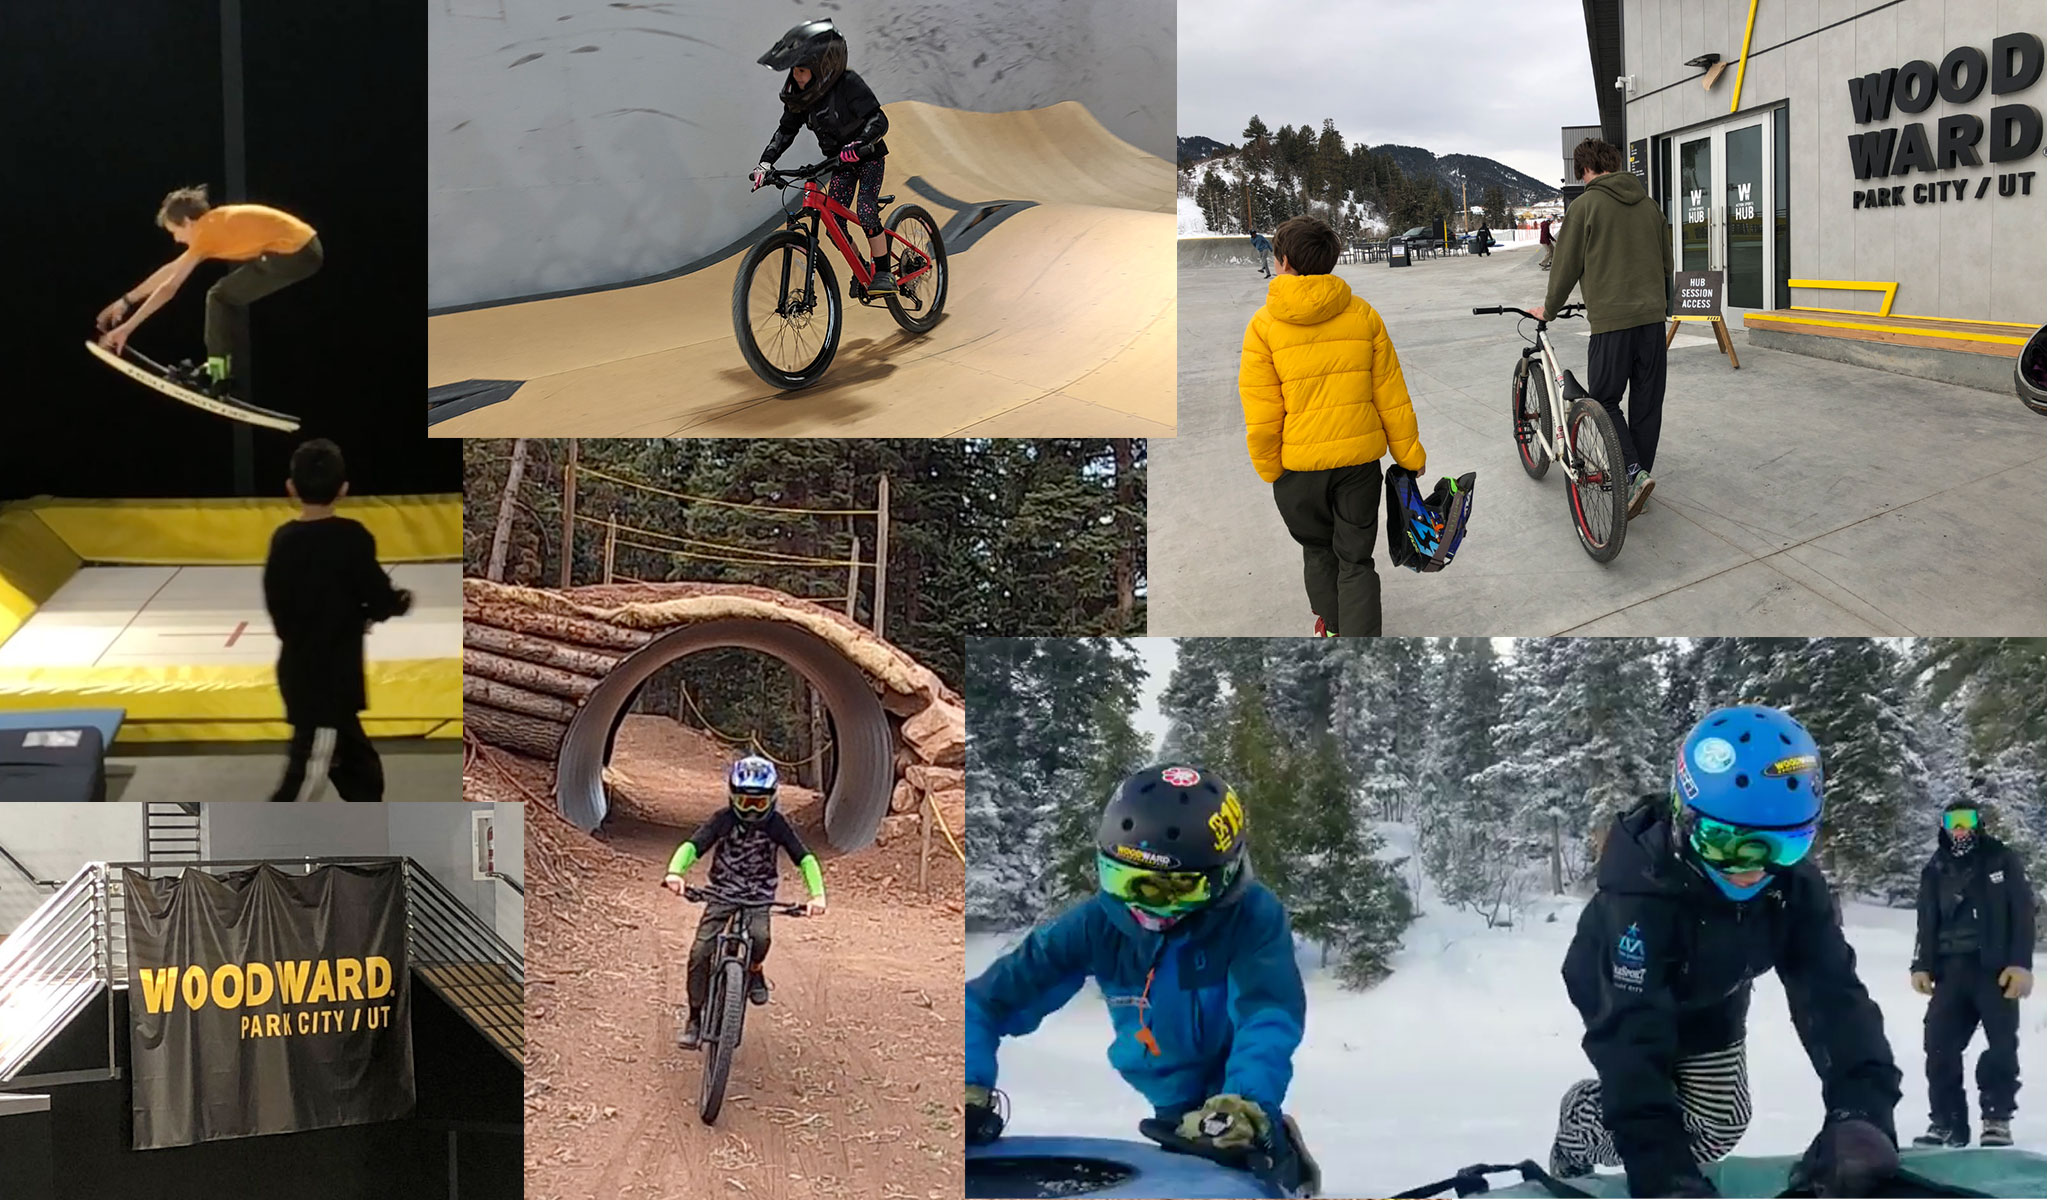 Woodward Park City - An action sports destination